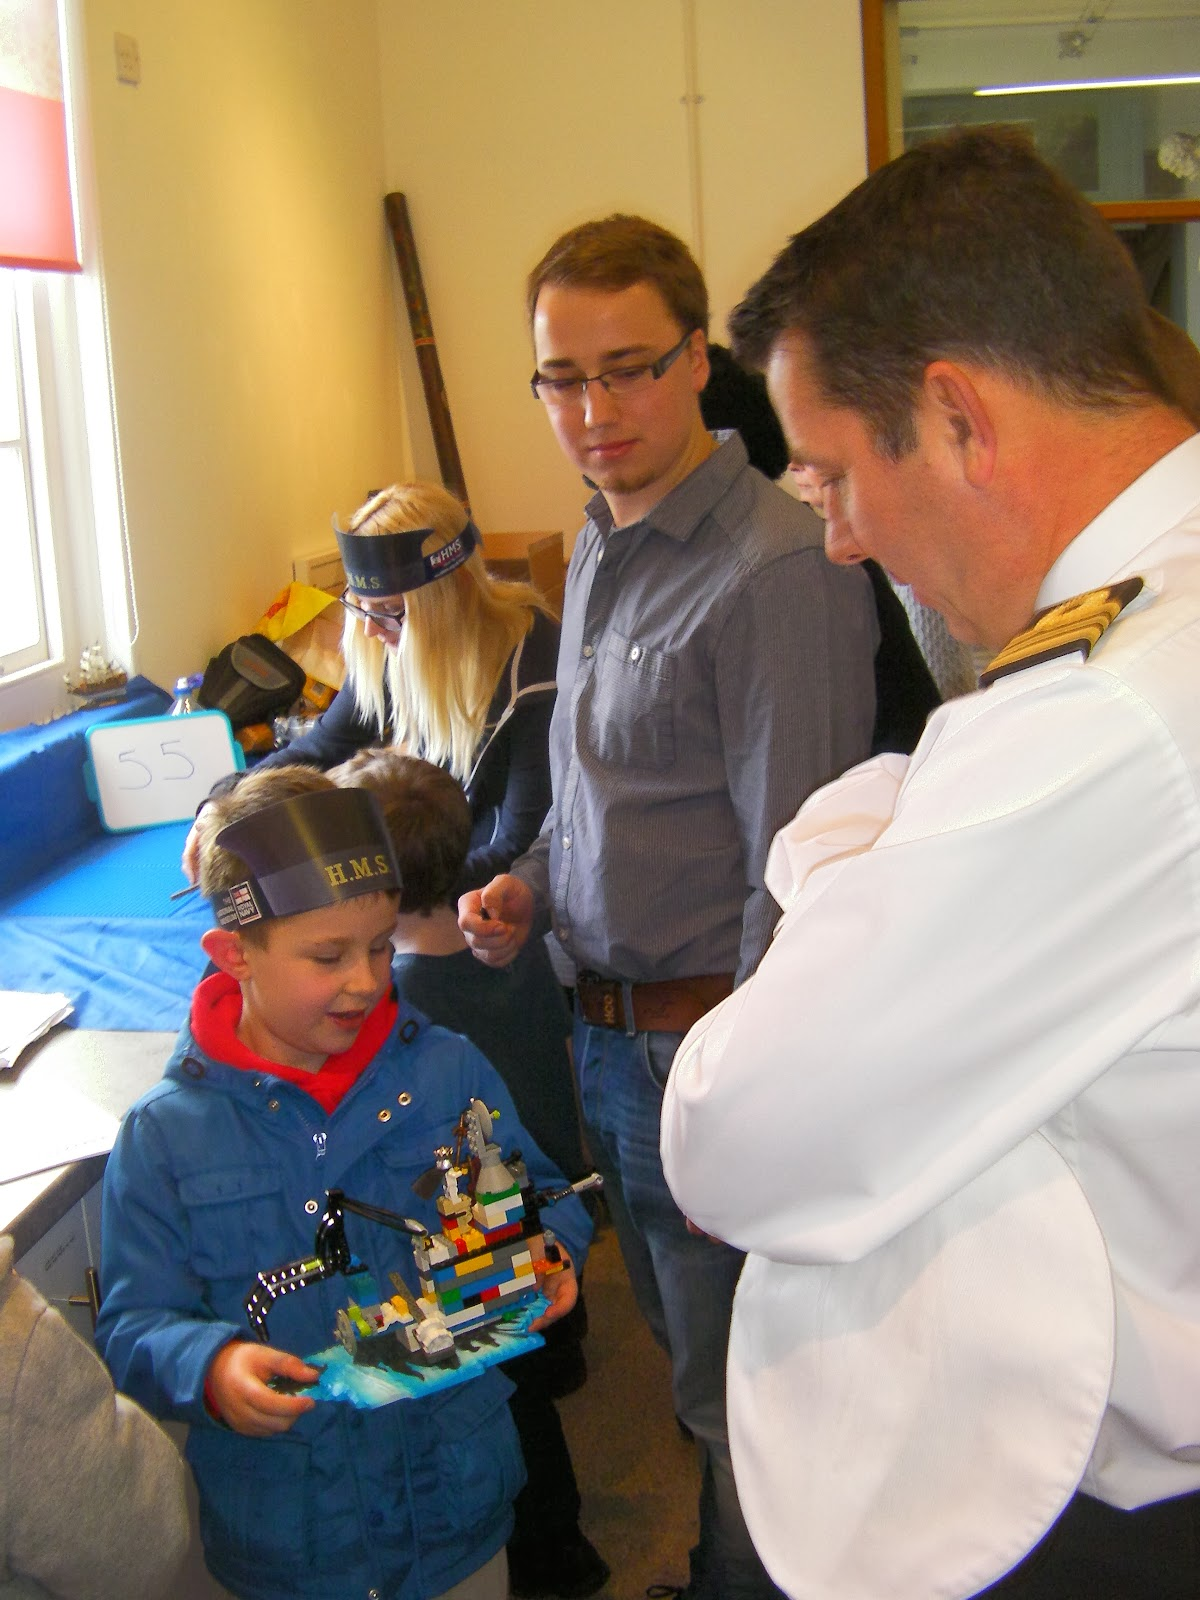 naval officer captain of hms victory approves of entrant in lego shipbuilding competition